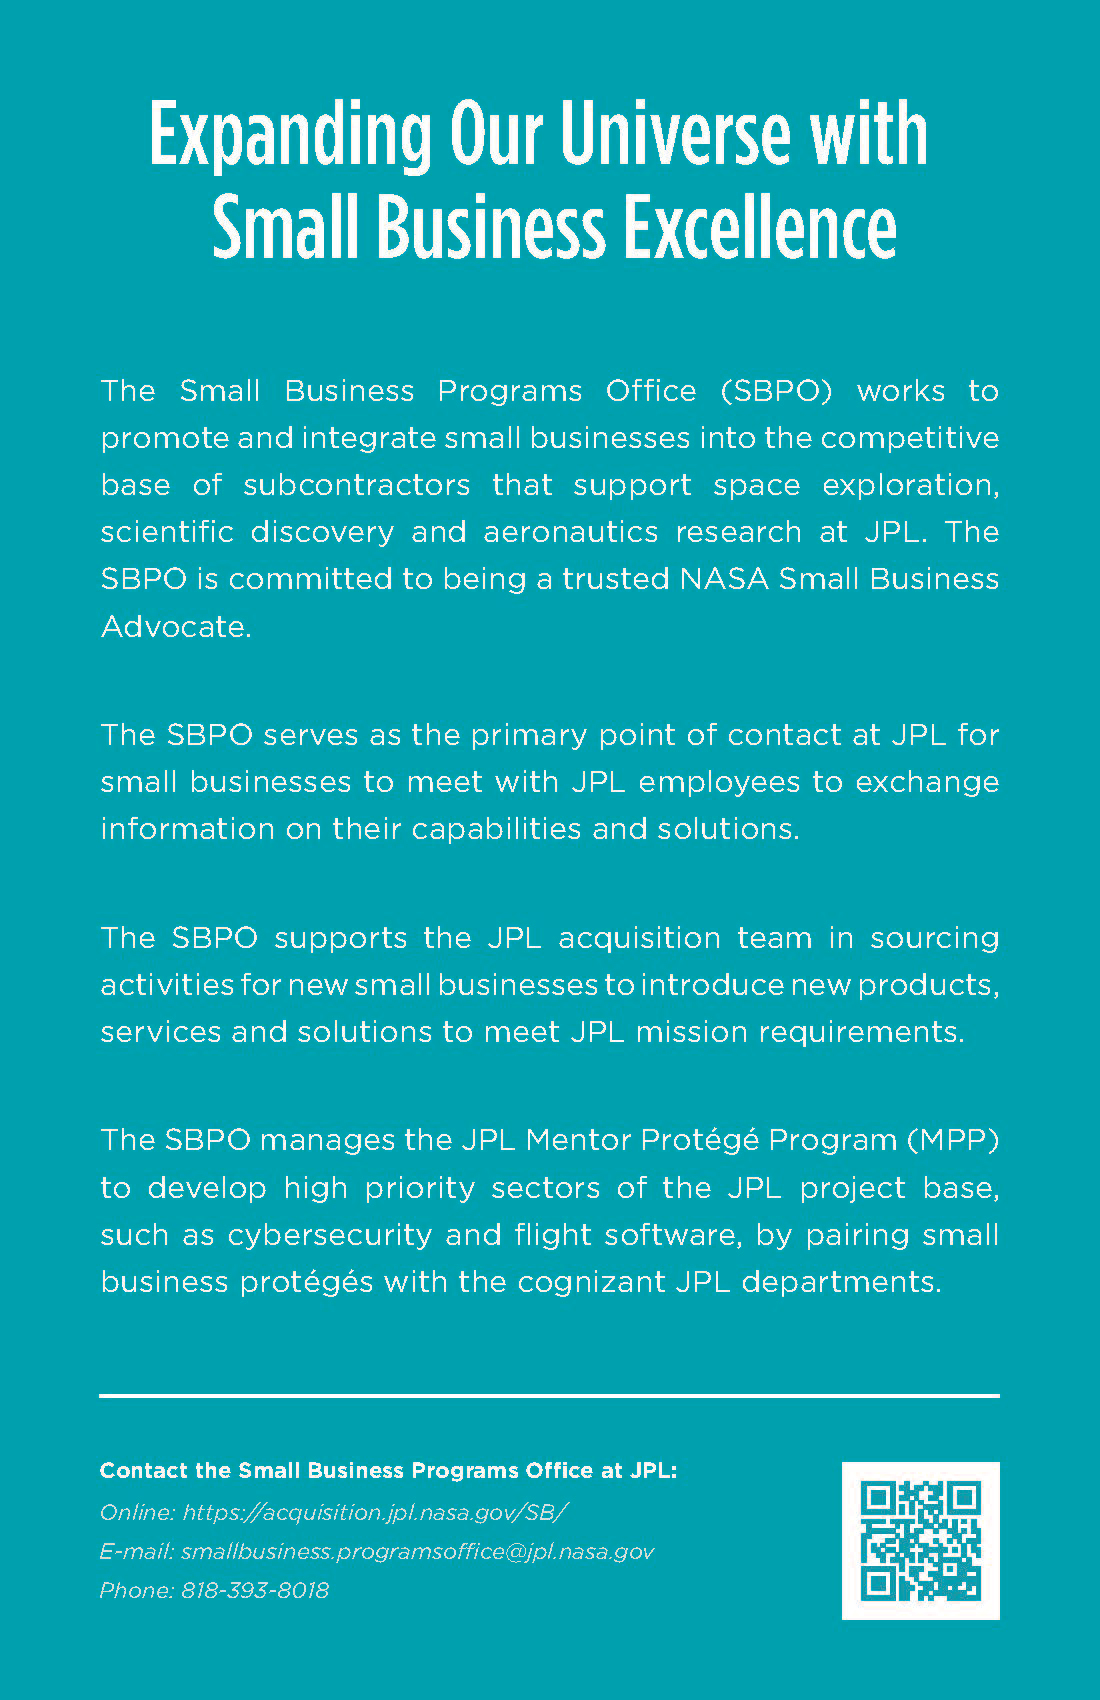 Small Business Program Office Flyer.